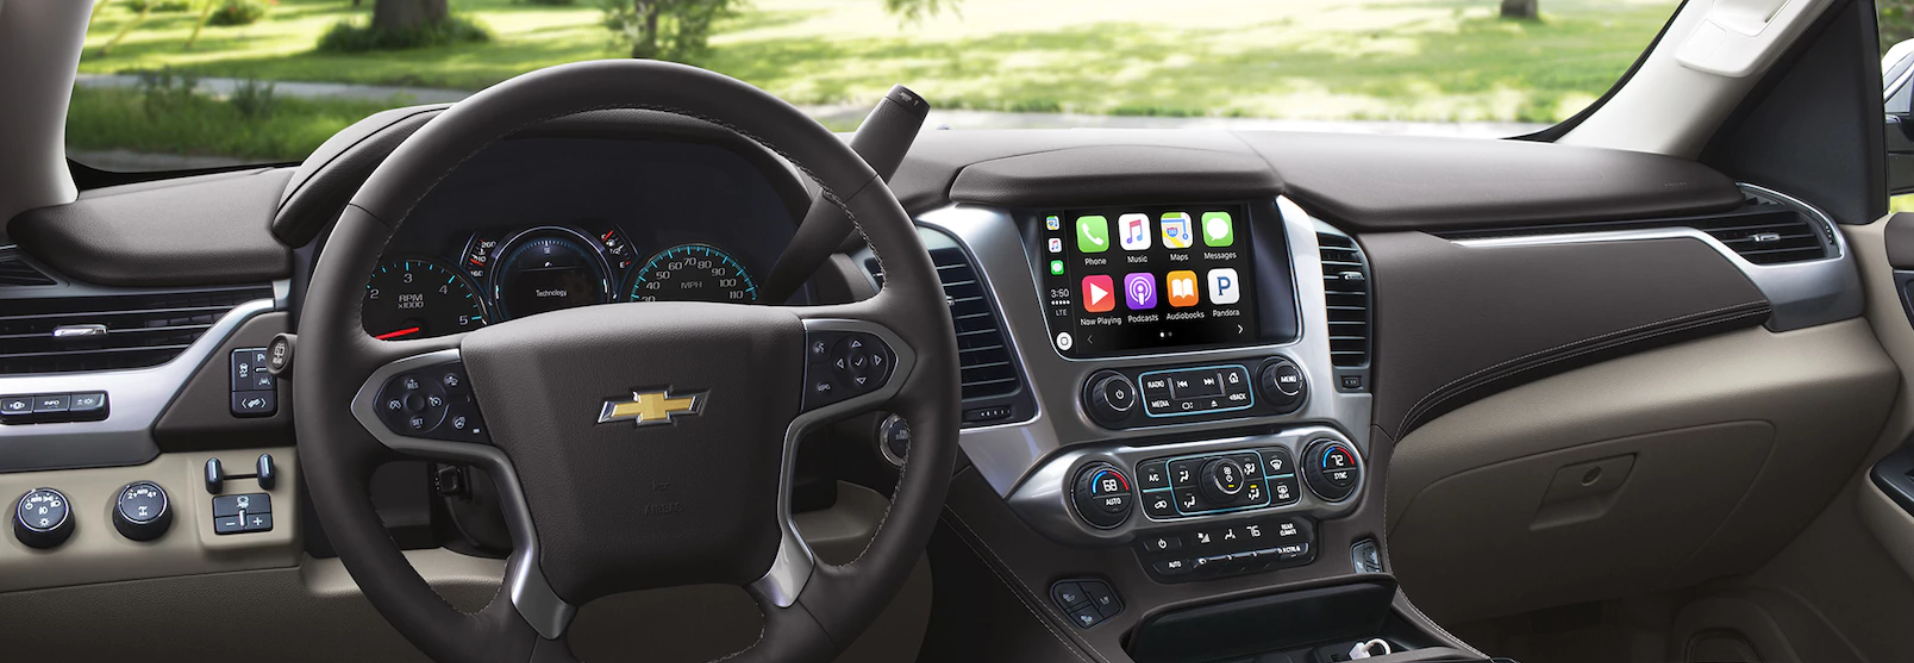 2017 Chevrolet Tahoe Tech